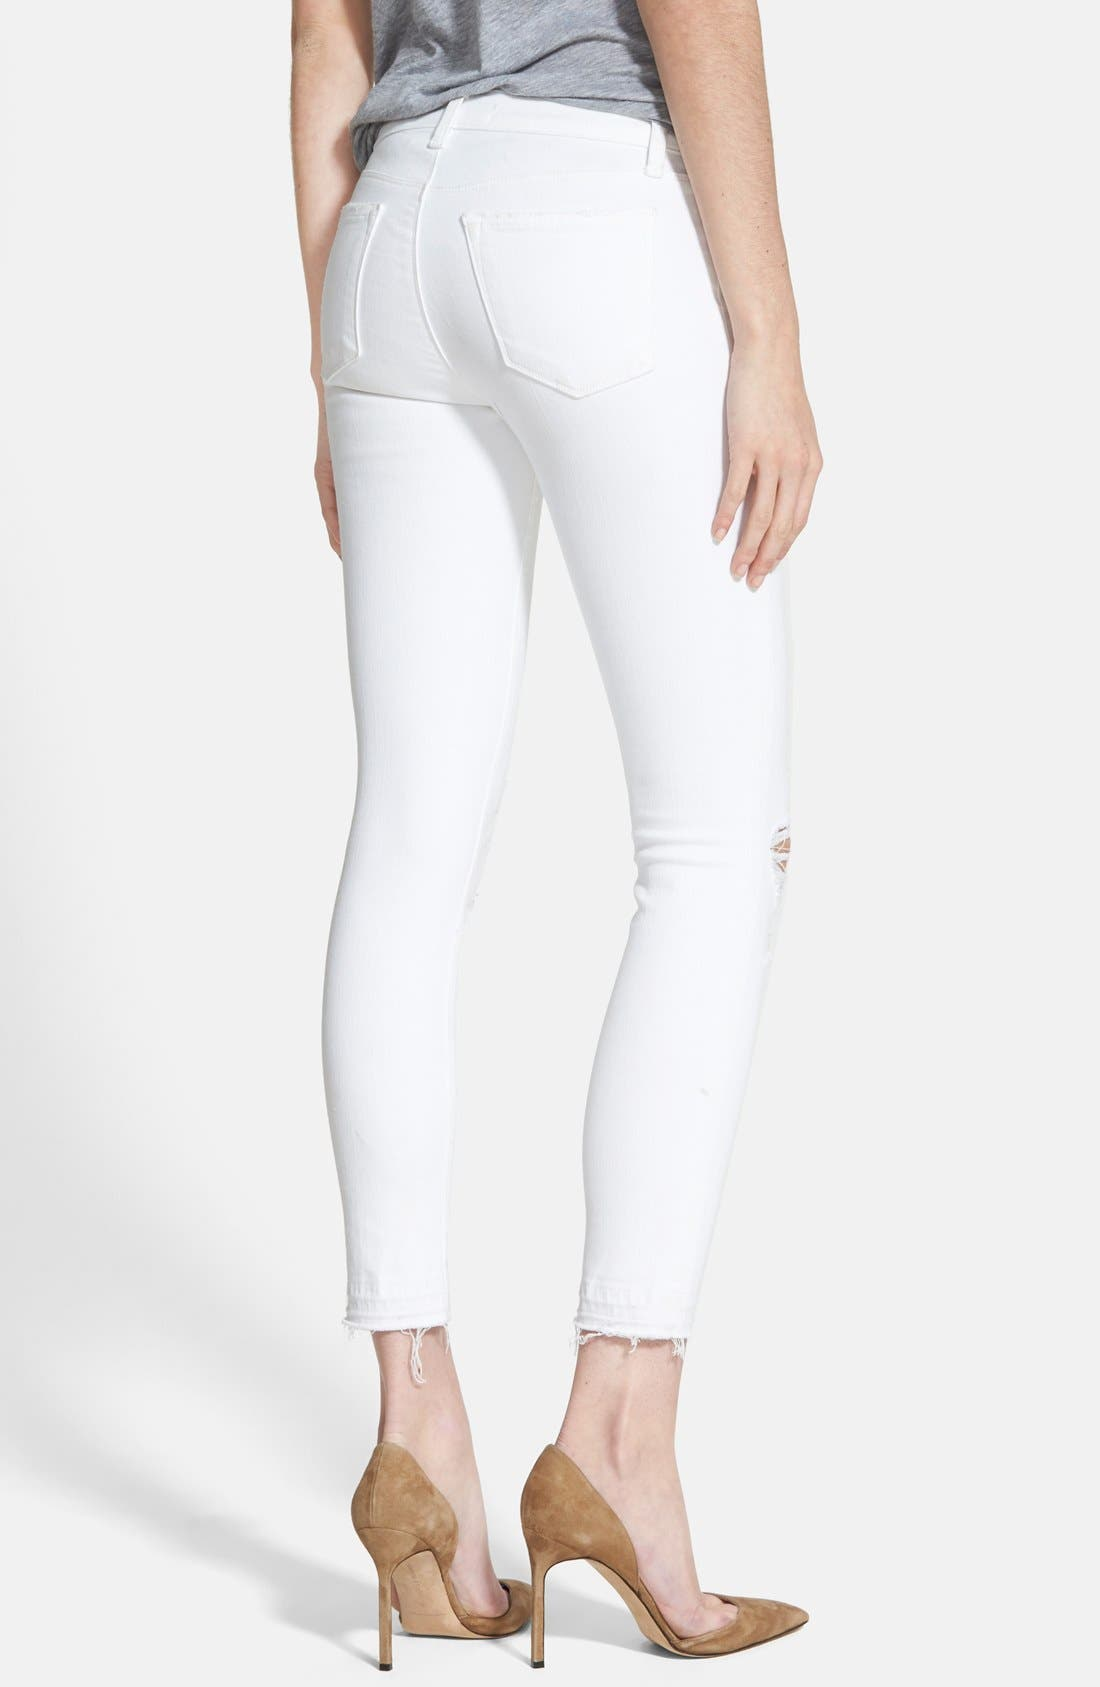 9326 Low Rise Crop Skinny Jeans,                             Alternate thumbnail 8, color,                             100